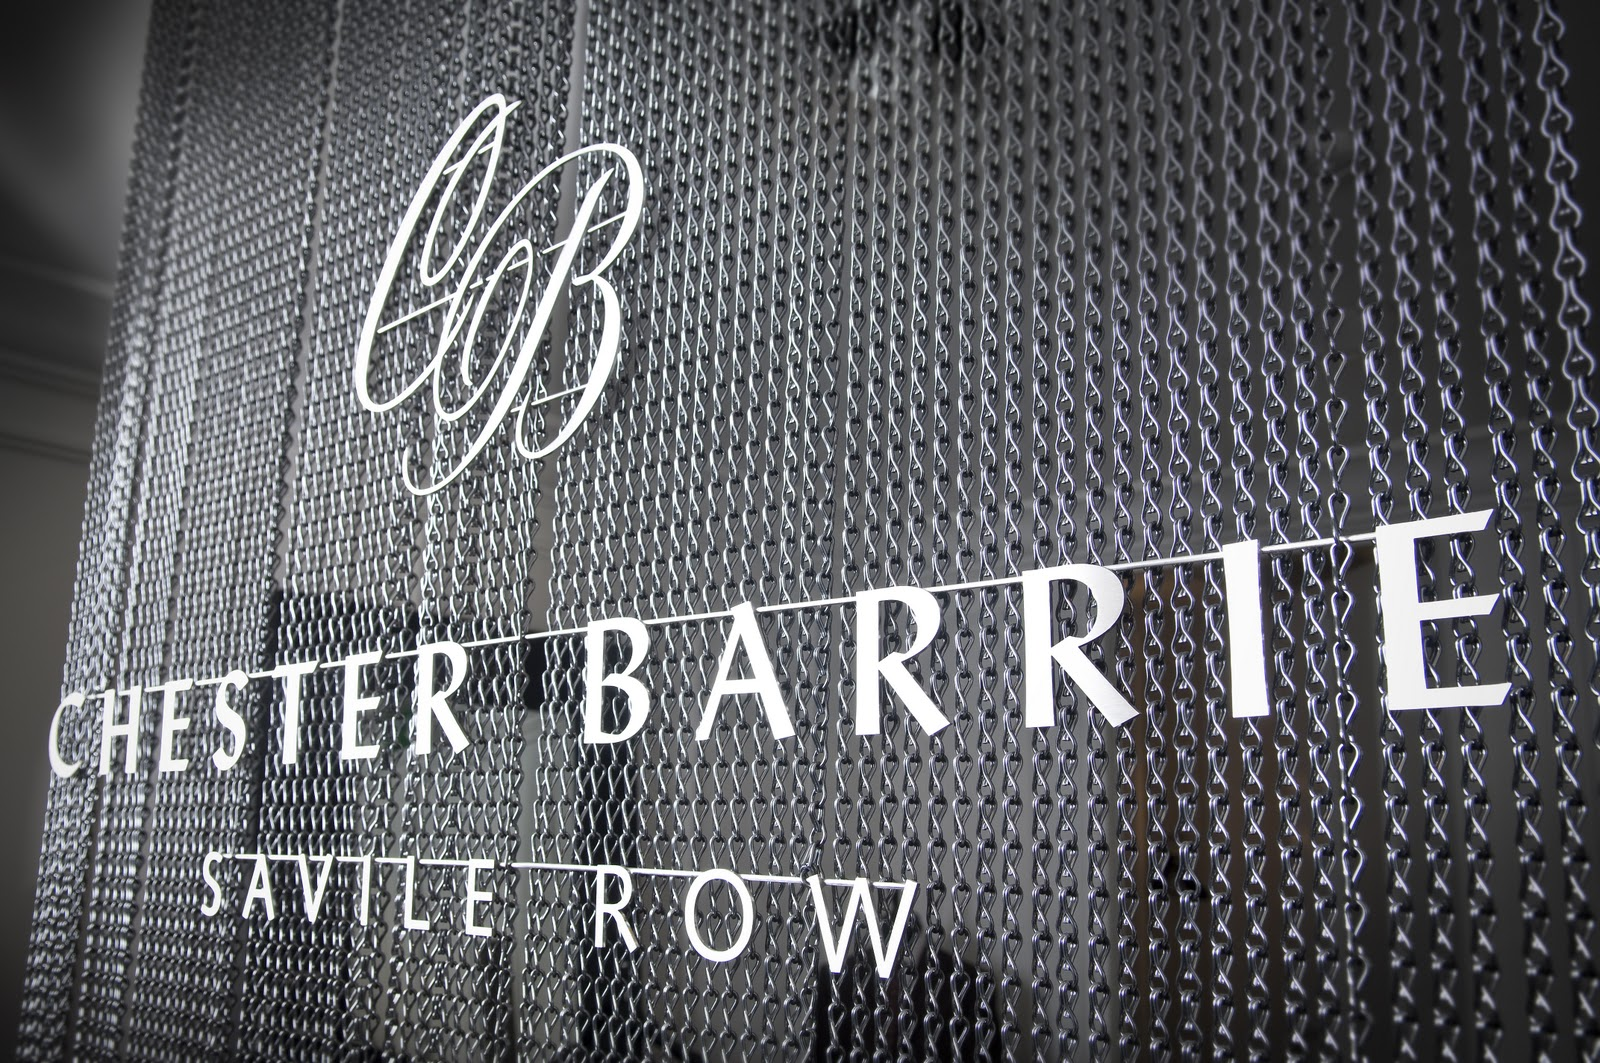 Savile Row Chester Barrie Suits Shirts Suits Shirts